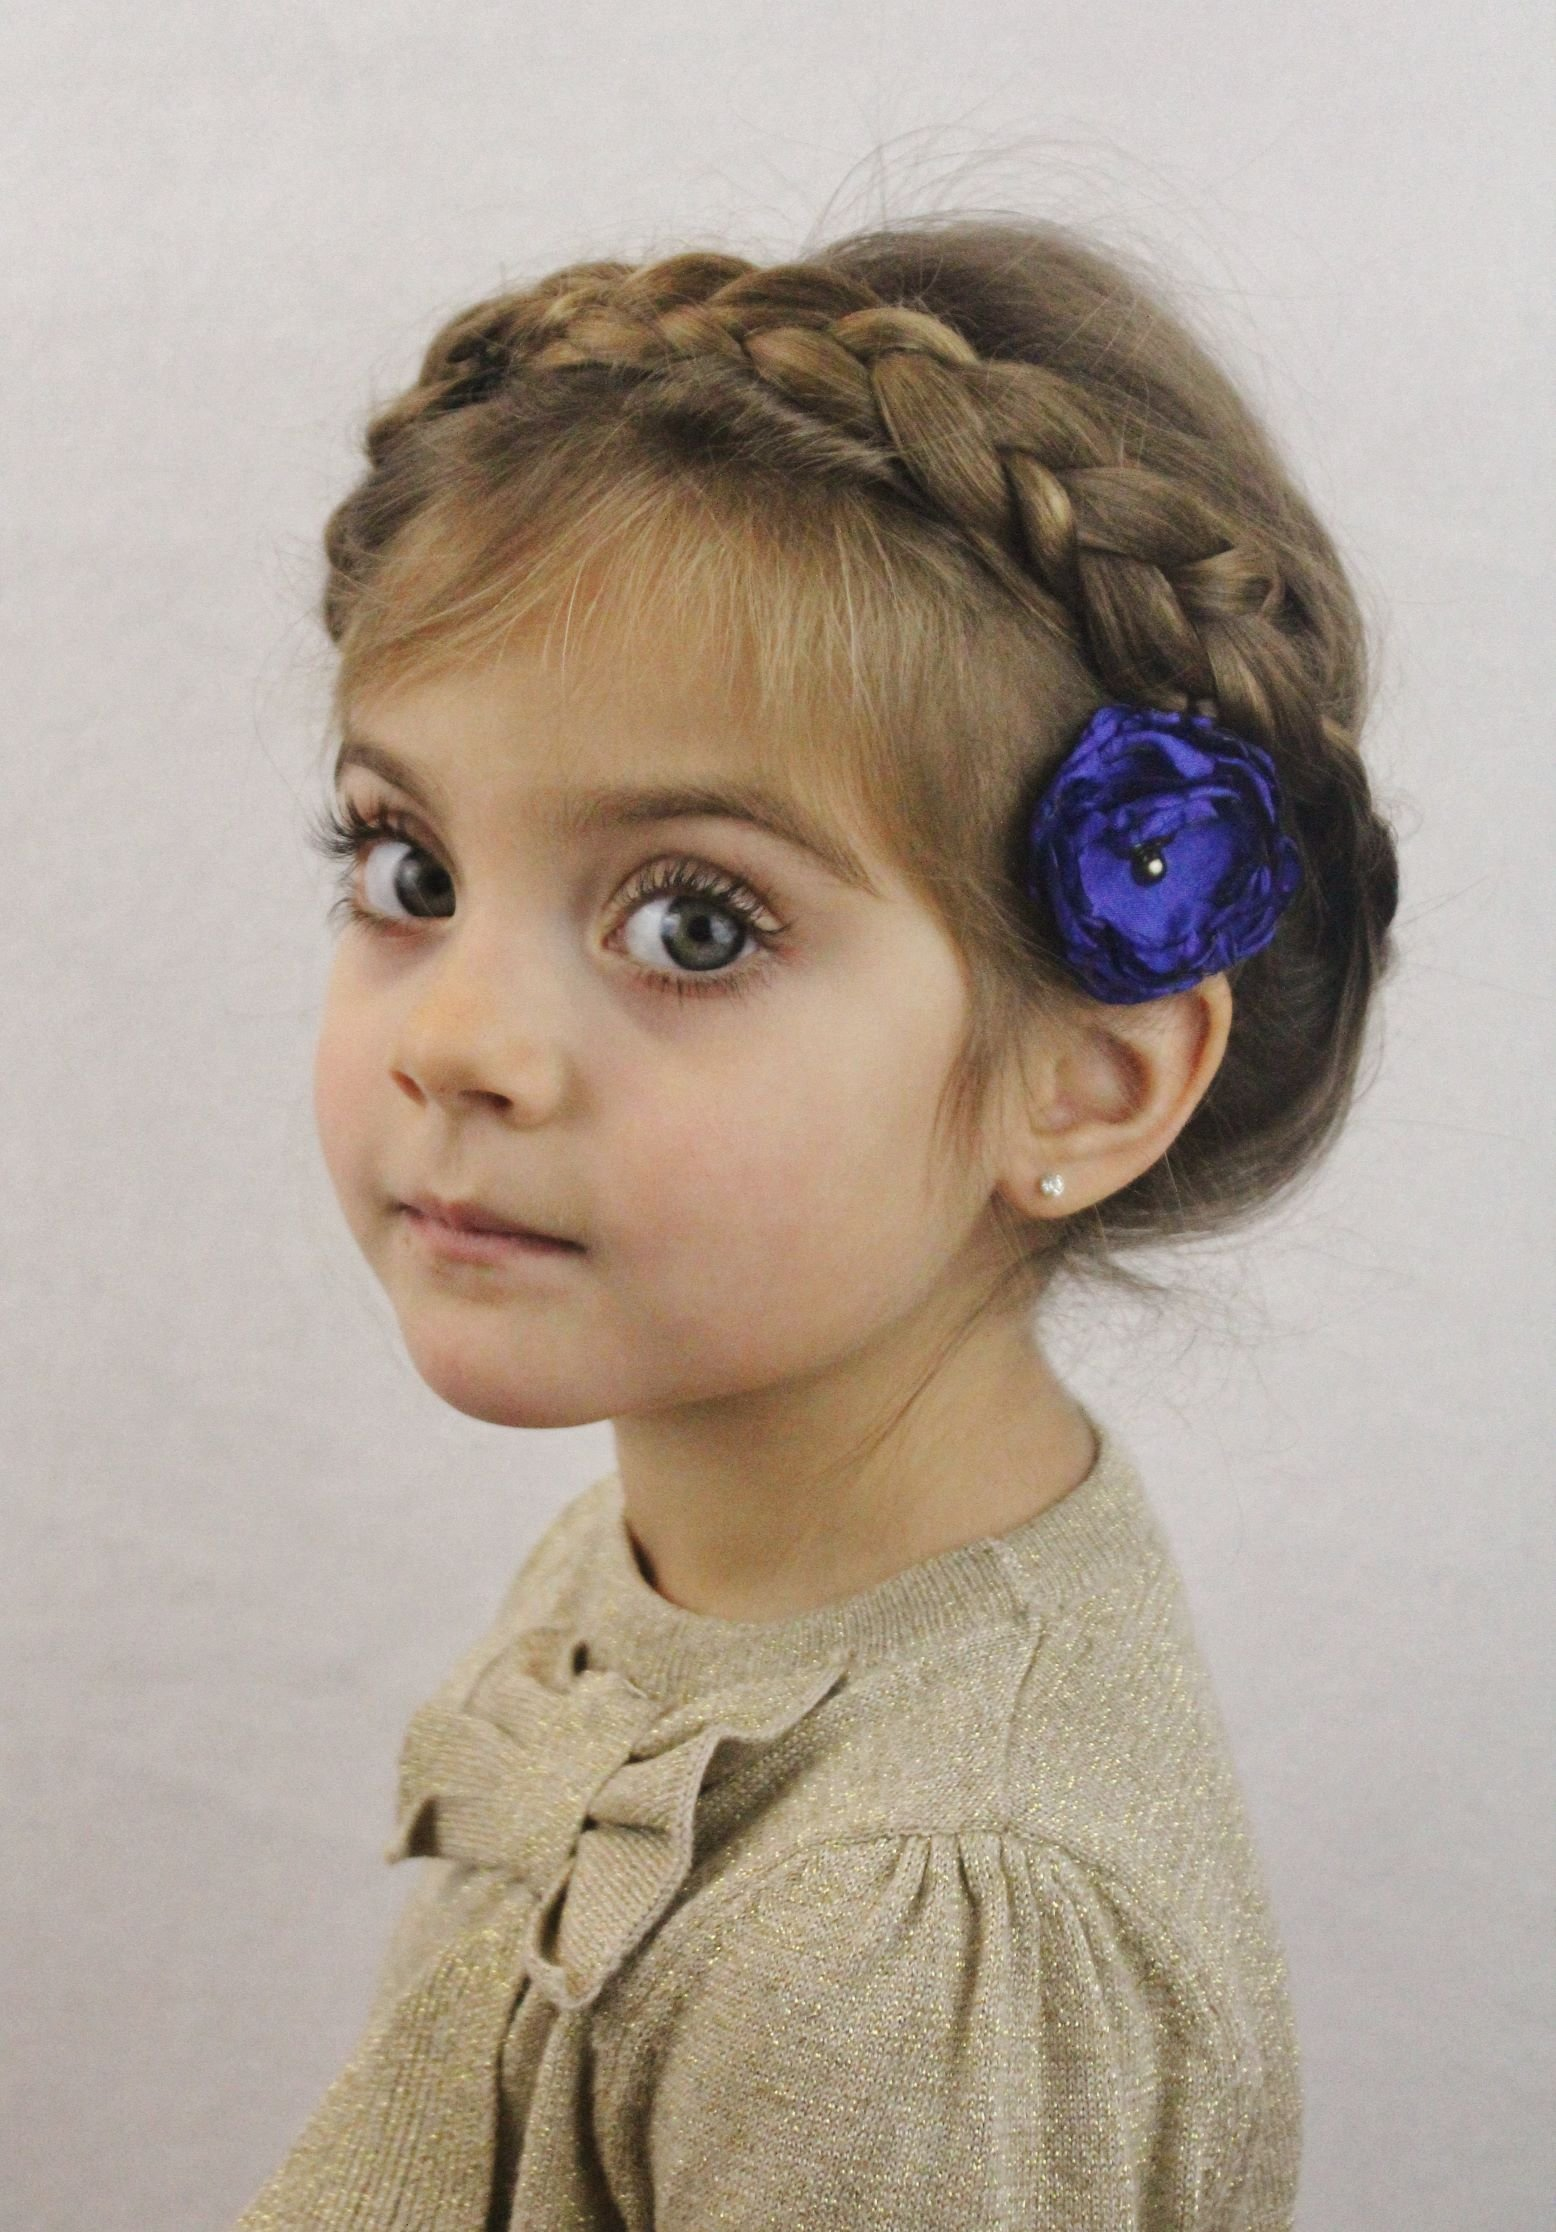 The Best 8 Year Old Girl Hairstyles Hairstyle For Women Man Pictures